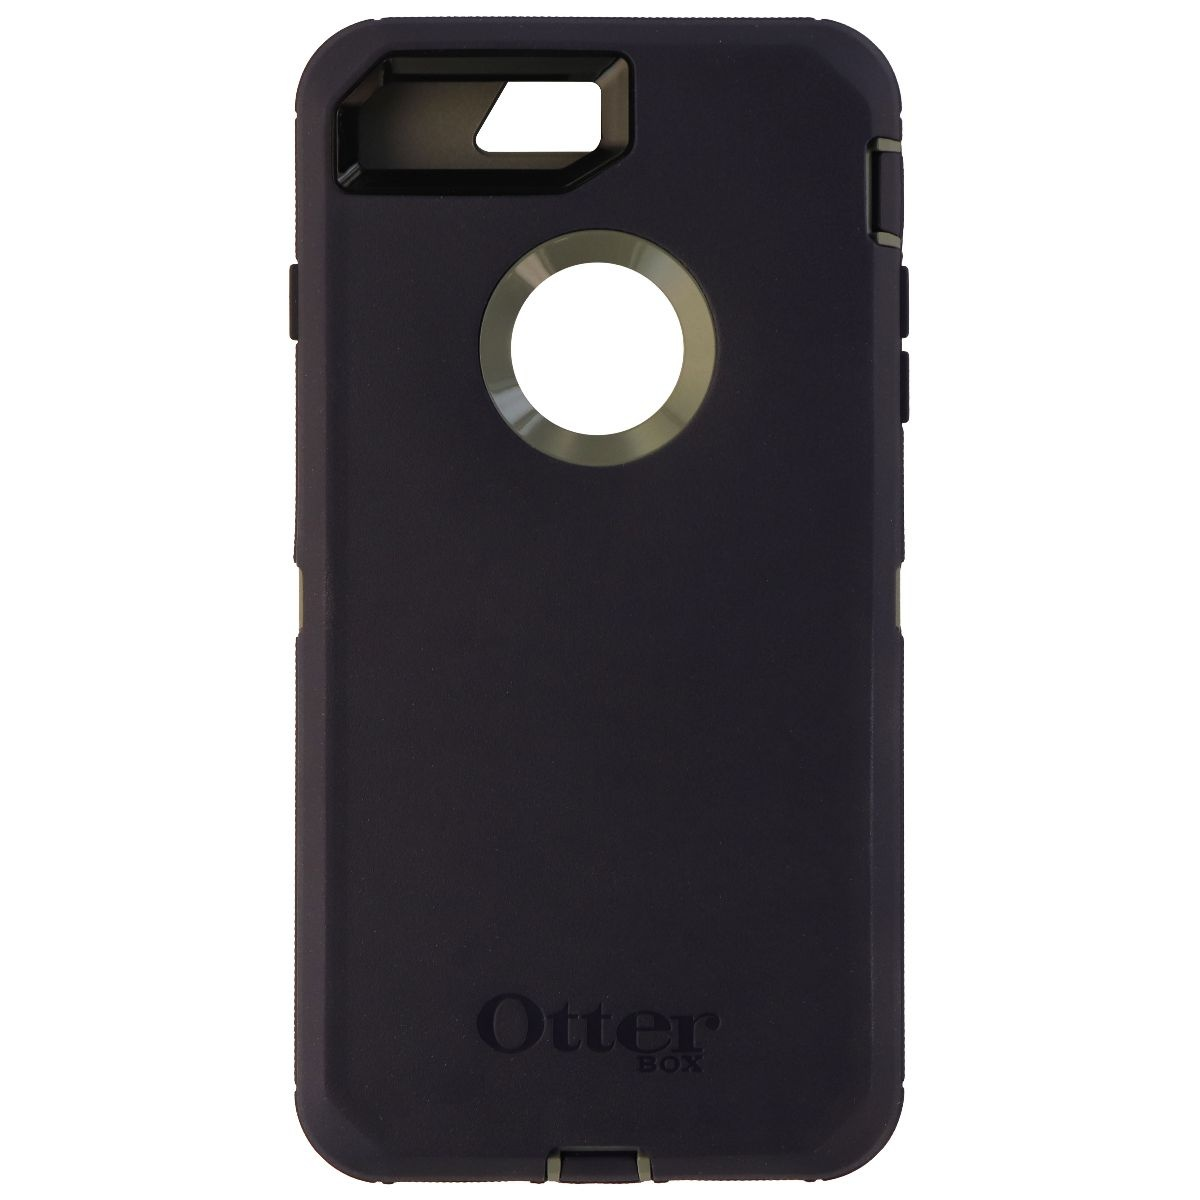 OtterBox Defender Series Case for iPhone 8 Plus / 7 Plus - Stormy Peaks/Navy